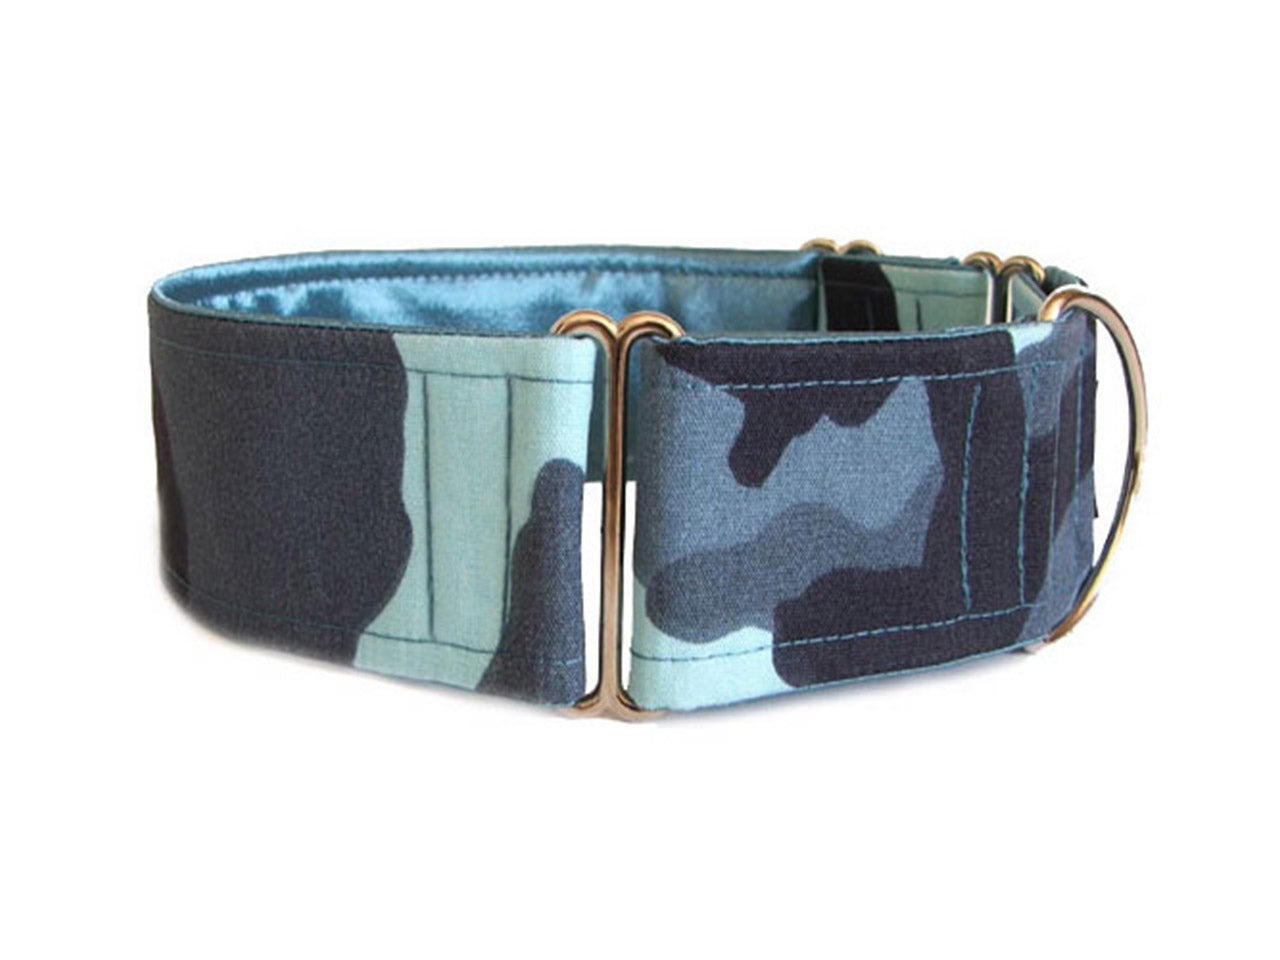 Shades of blue camouflage make this the perfect collar for any campaign, whether it's pool-side or sofa-side!